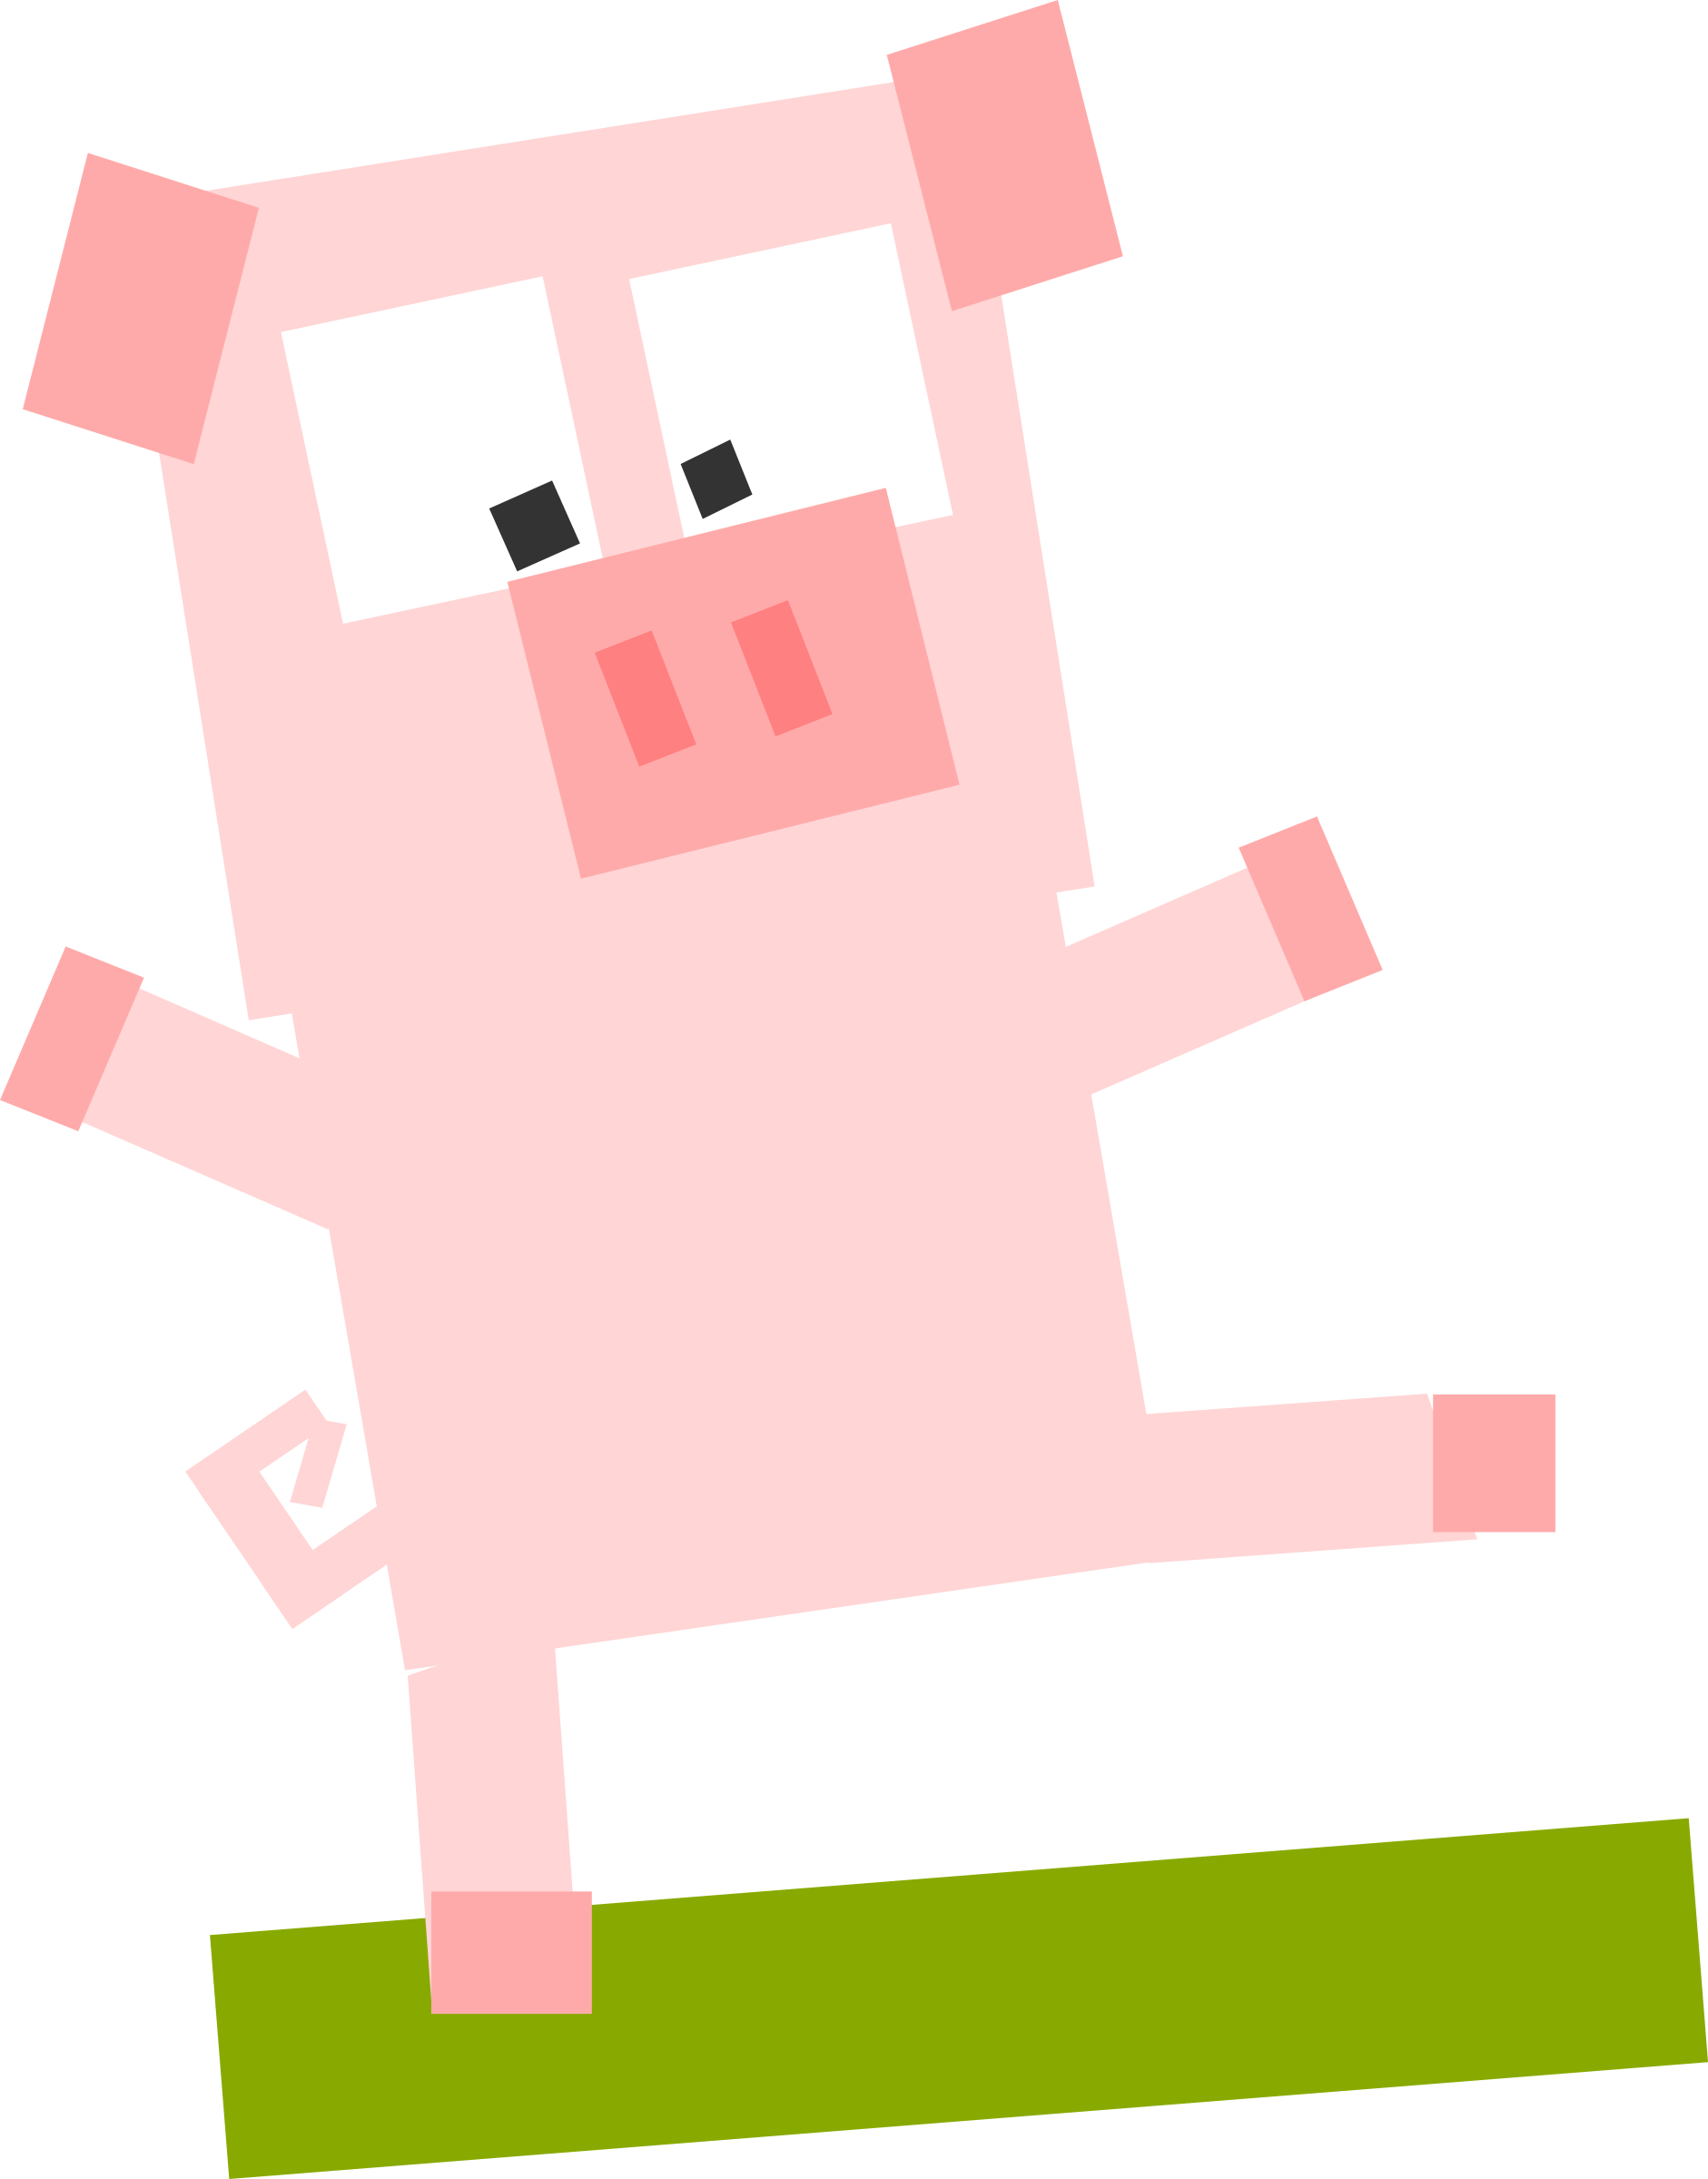 Square animal cartoon pig by Dog99x